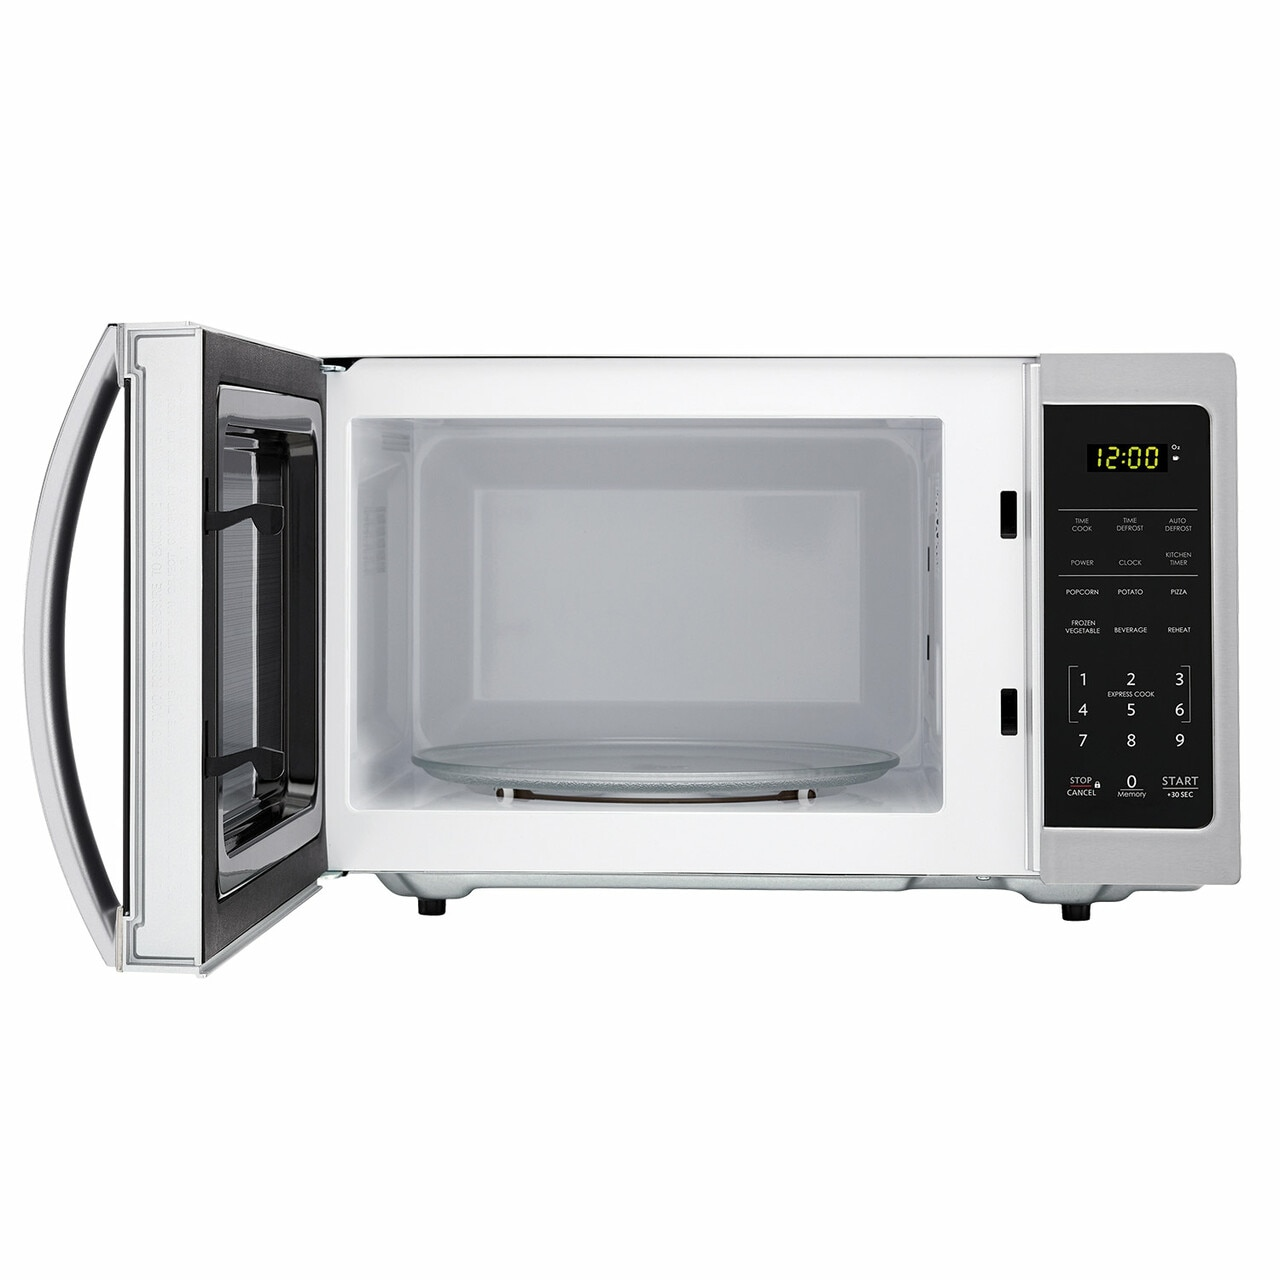 0.7 cu. ft. Sharp Stainless Steel Countertop Microwave (SMC0711BS) – front view with door open